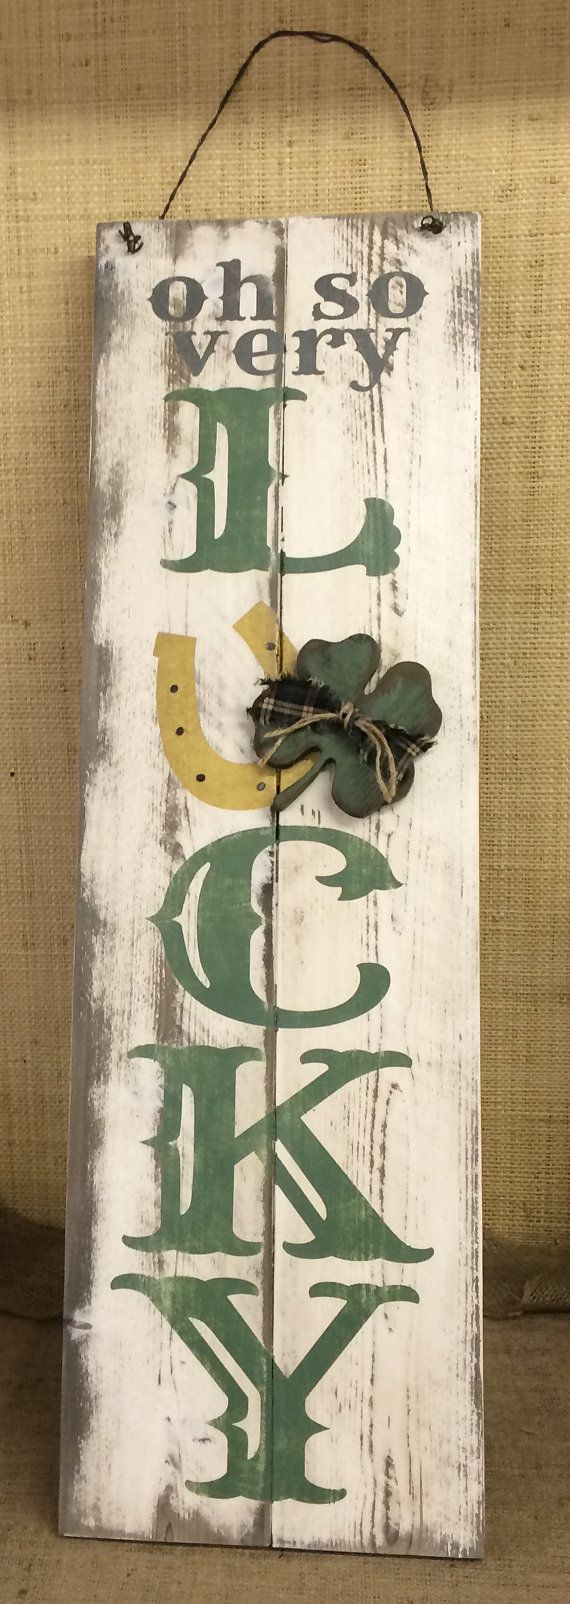 Oh So Very LUCKY Shamrock / St. Patrick's Day Sign - Hand Made from Distressed,Western Red Cedar Wood